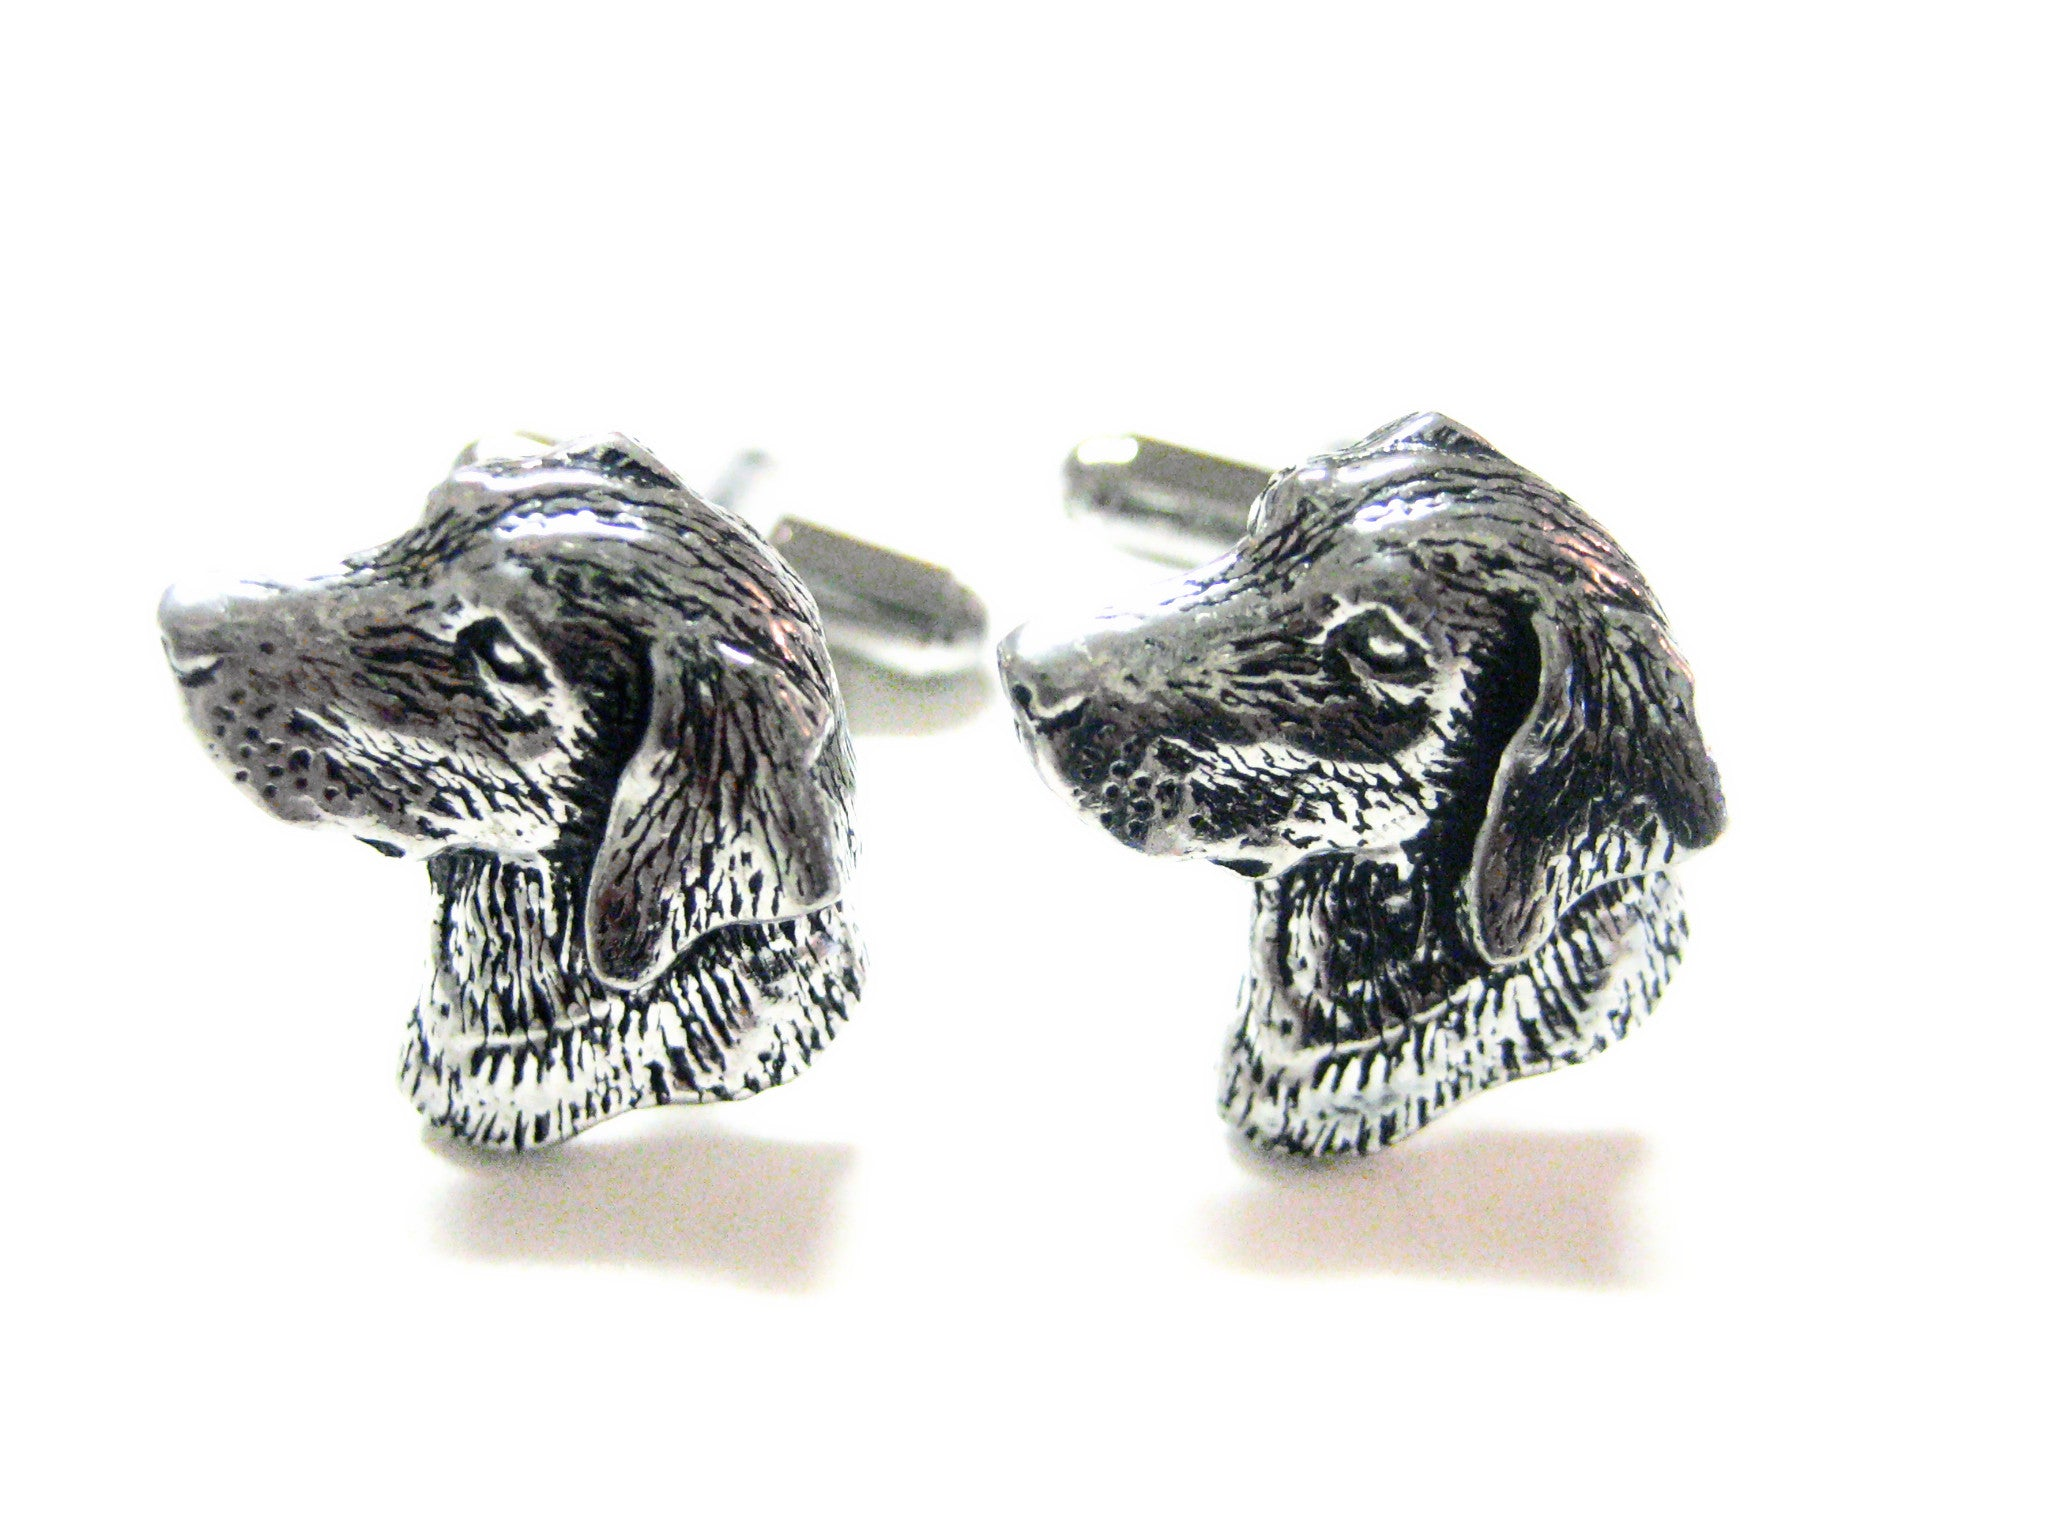 Labrador Dog Cufflinks